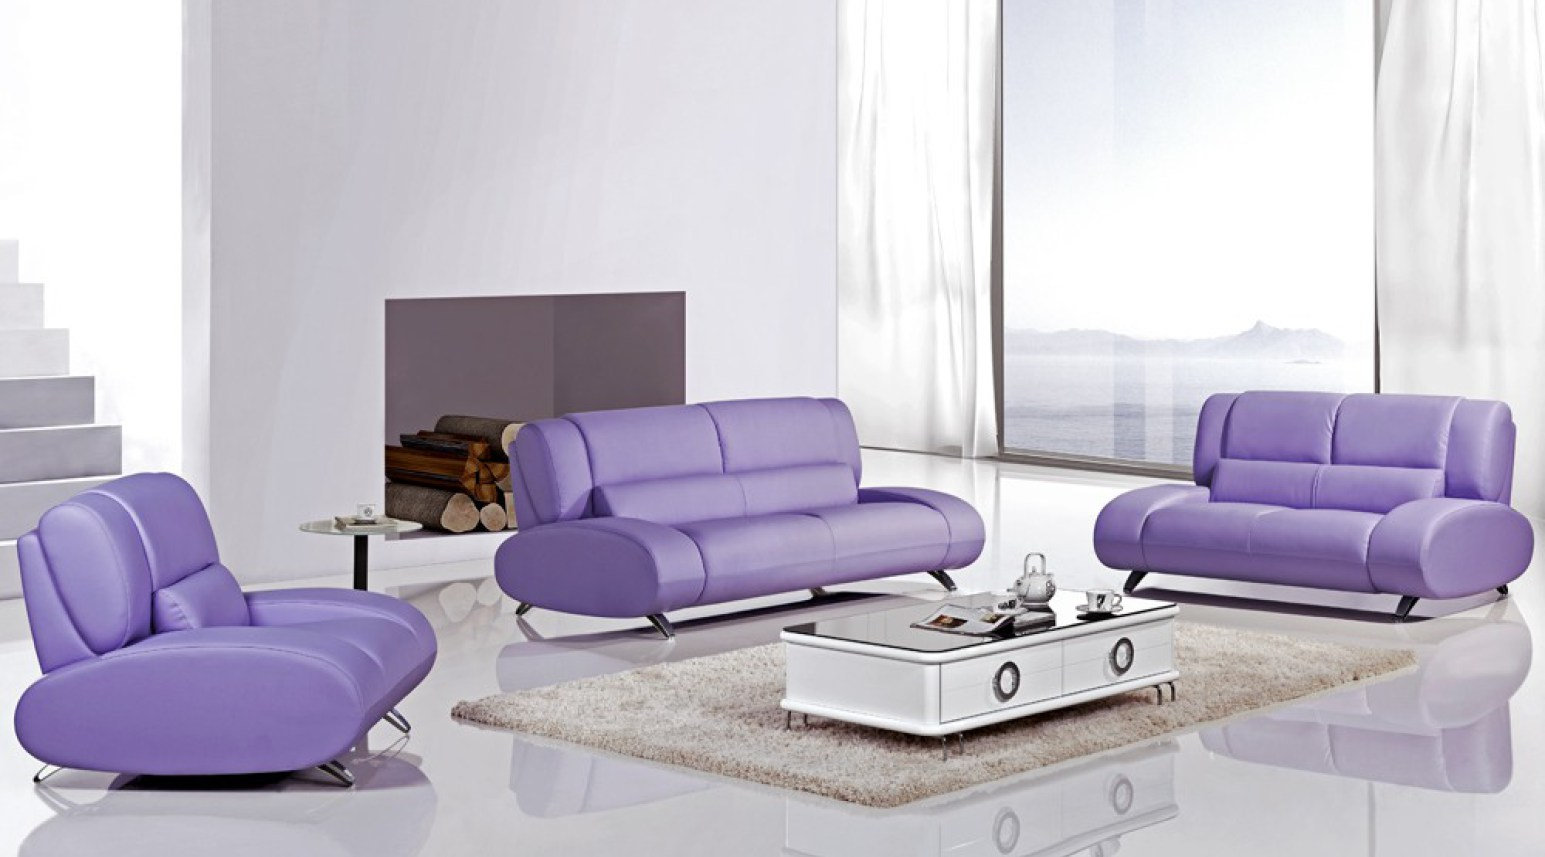 Warm Purple Sofa to Complete Your Living Room Decor: Purple Fainting Couch | Living Room With Purple Sofa | Purple Sofa